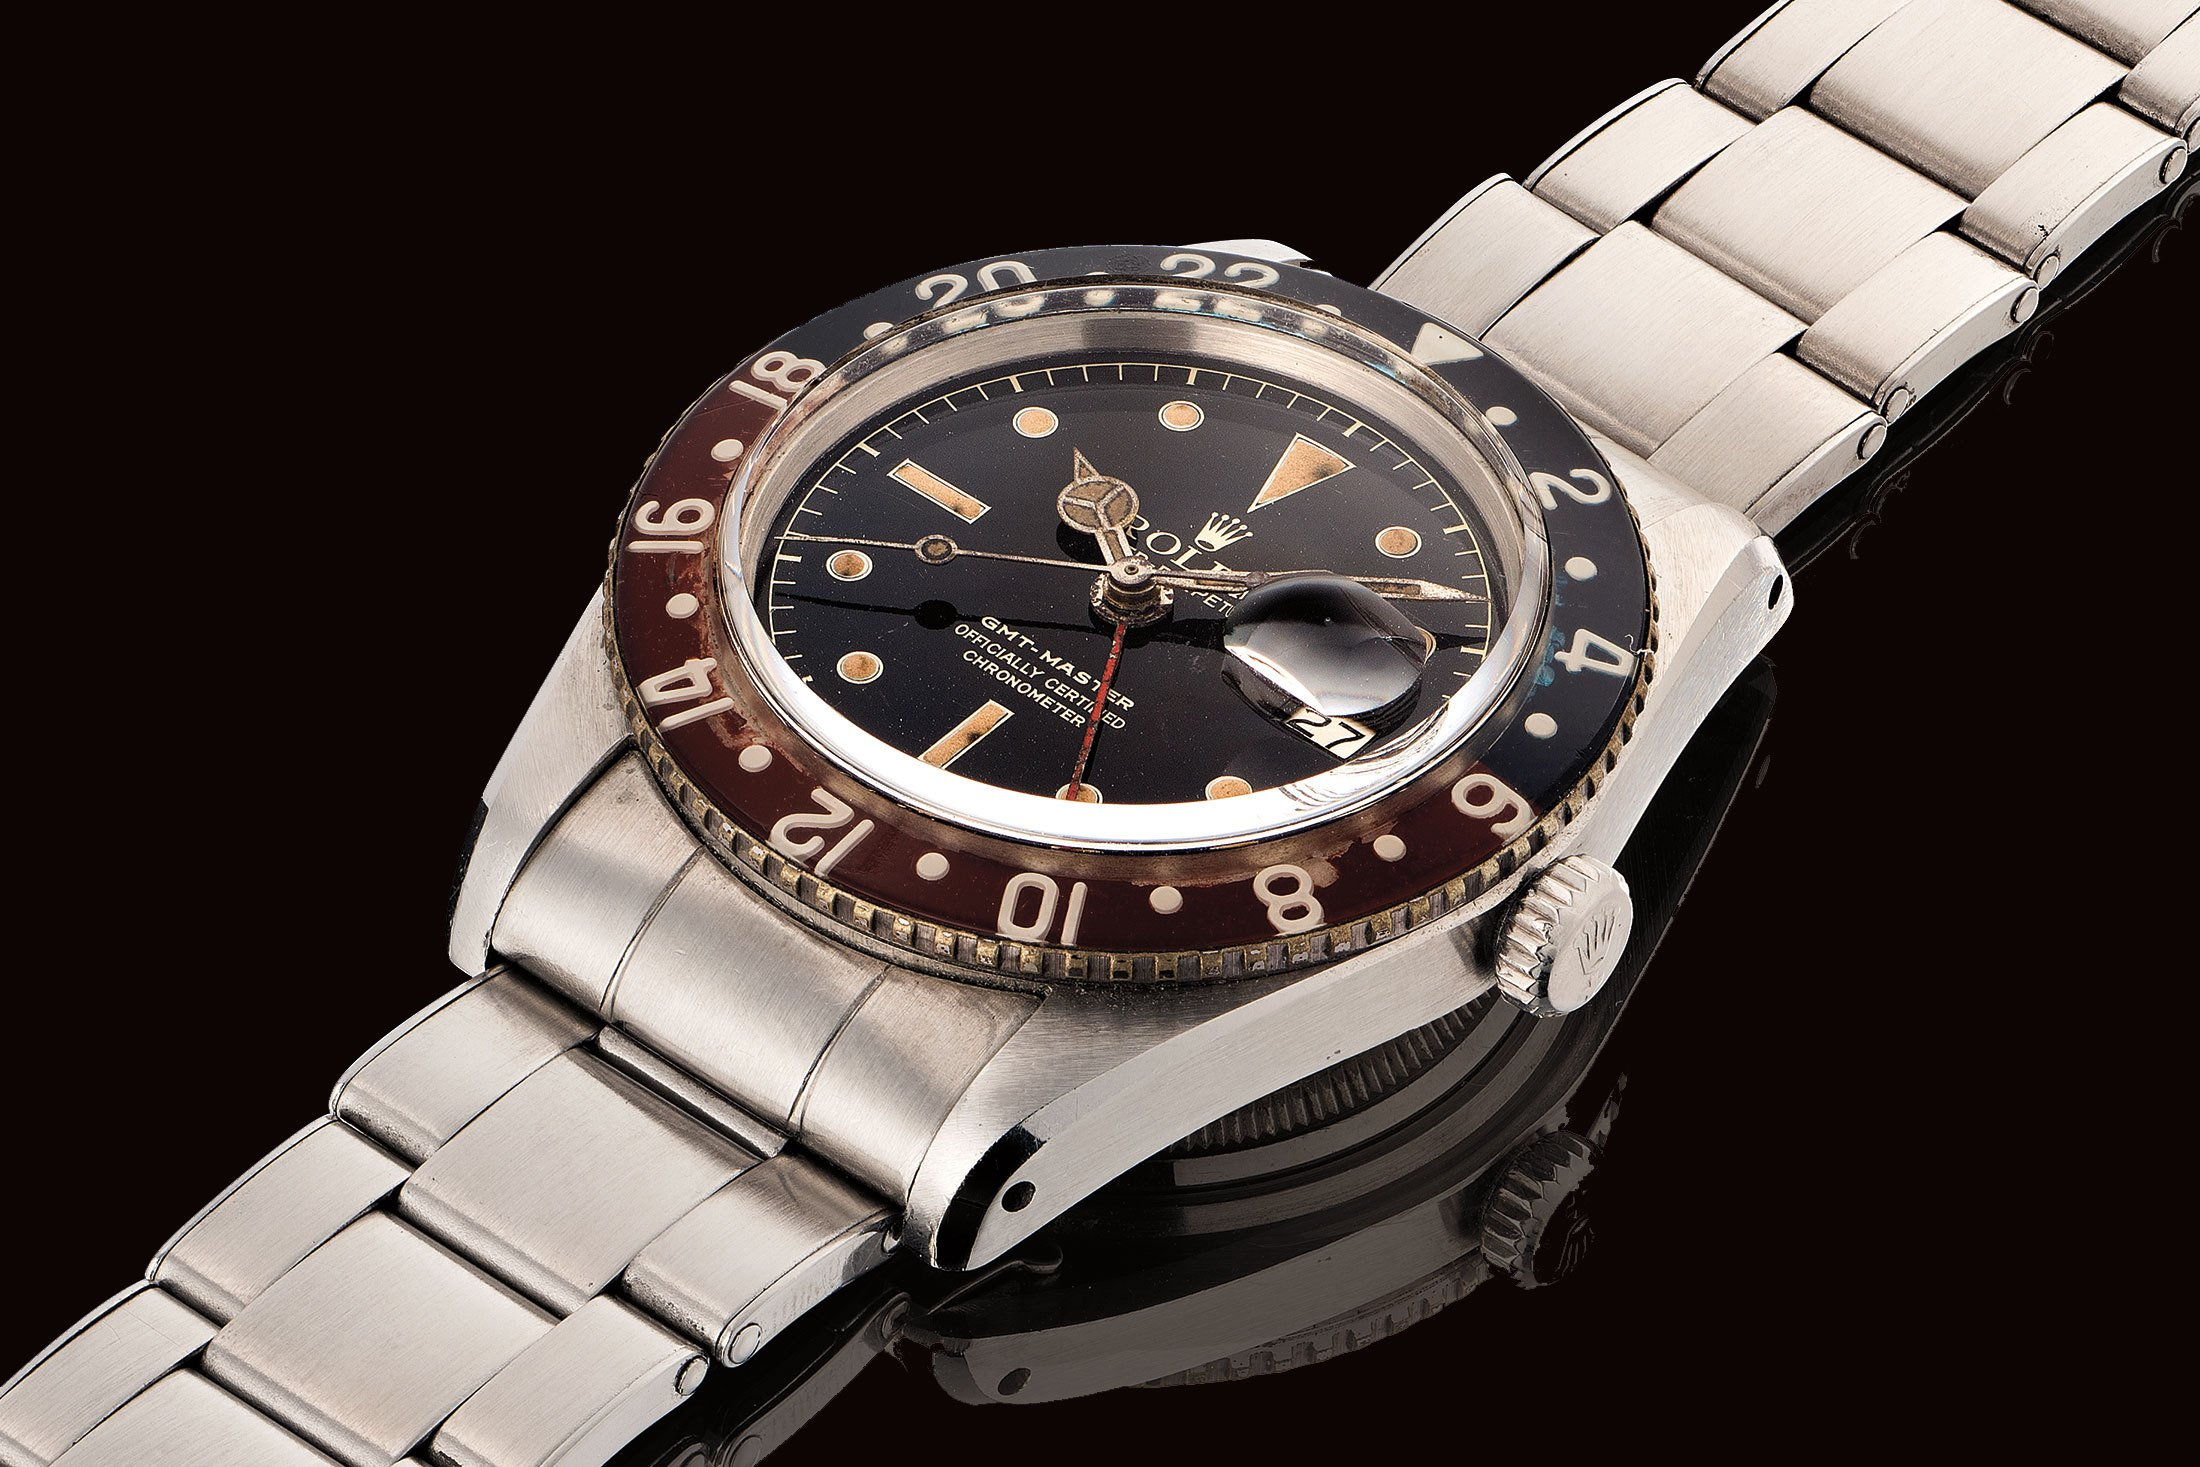 The GMT evolved from the Turn-O-Graph